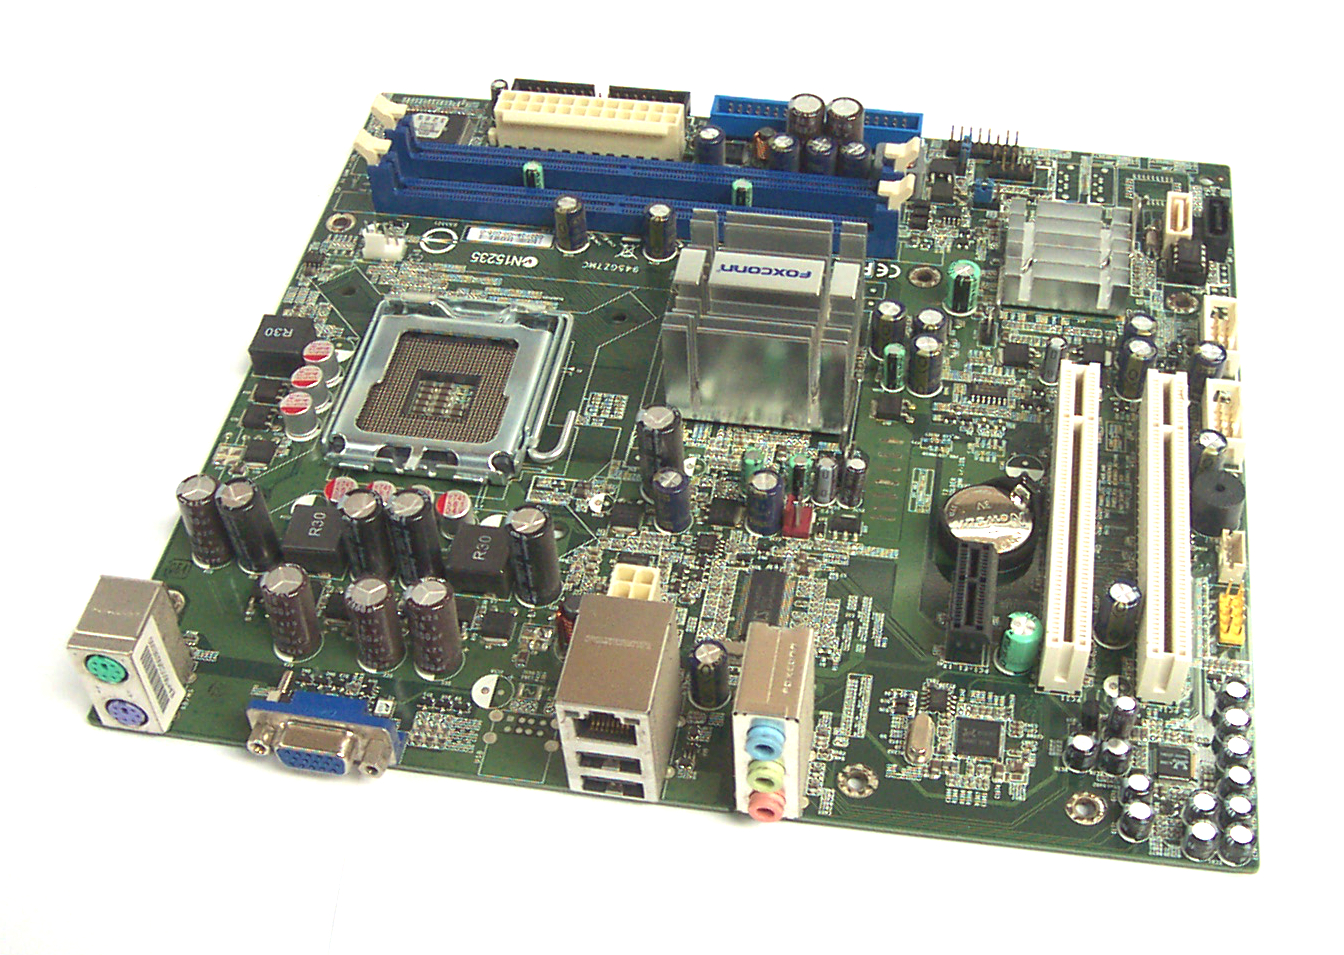 UNTESTED Foxconn 945GZ7MC-S2H Socket LGA775 Motherboard